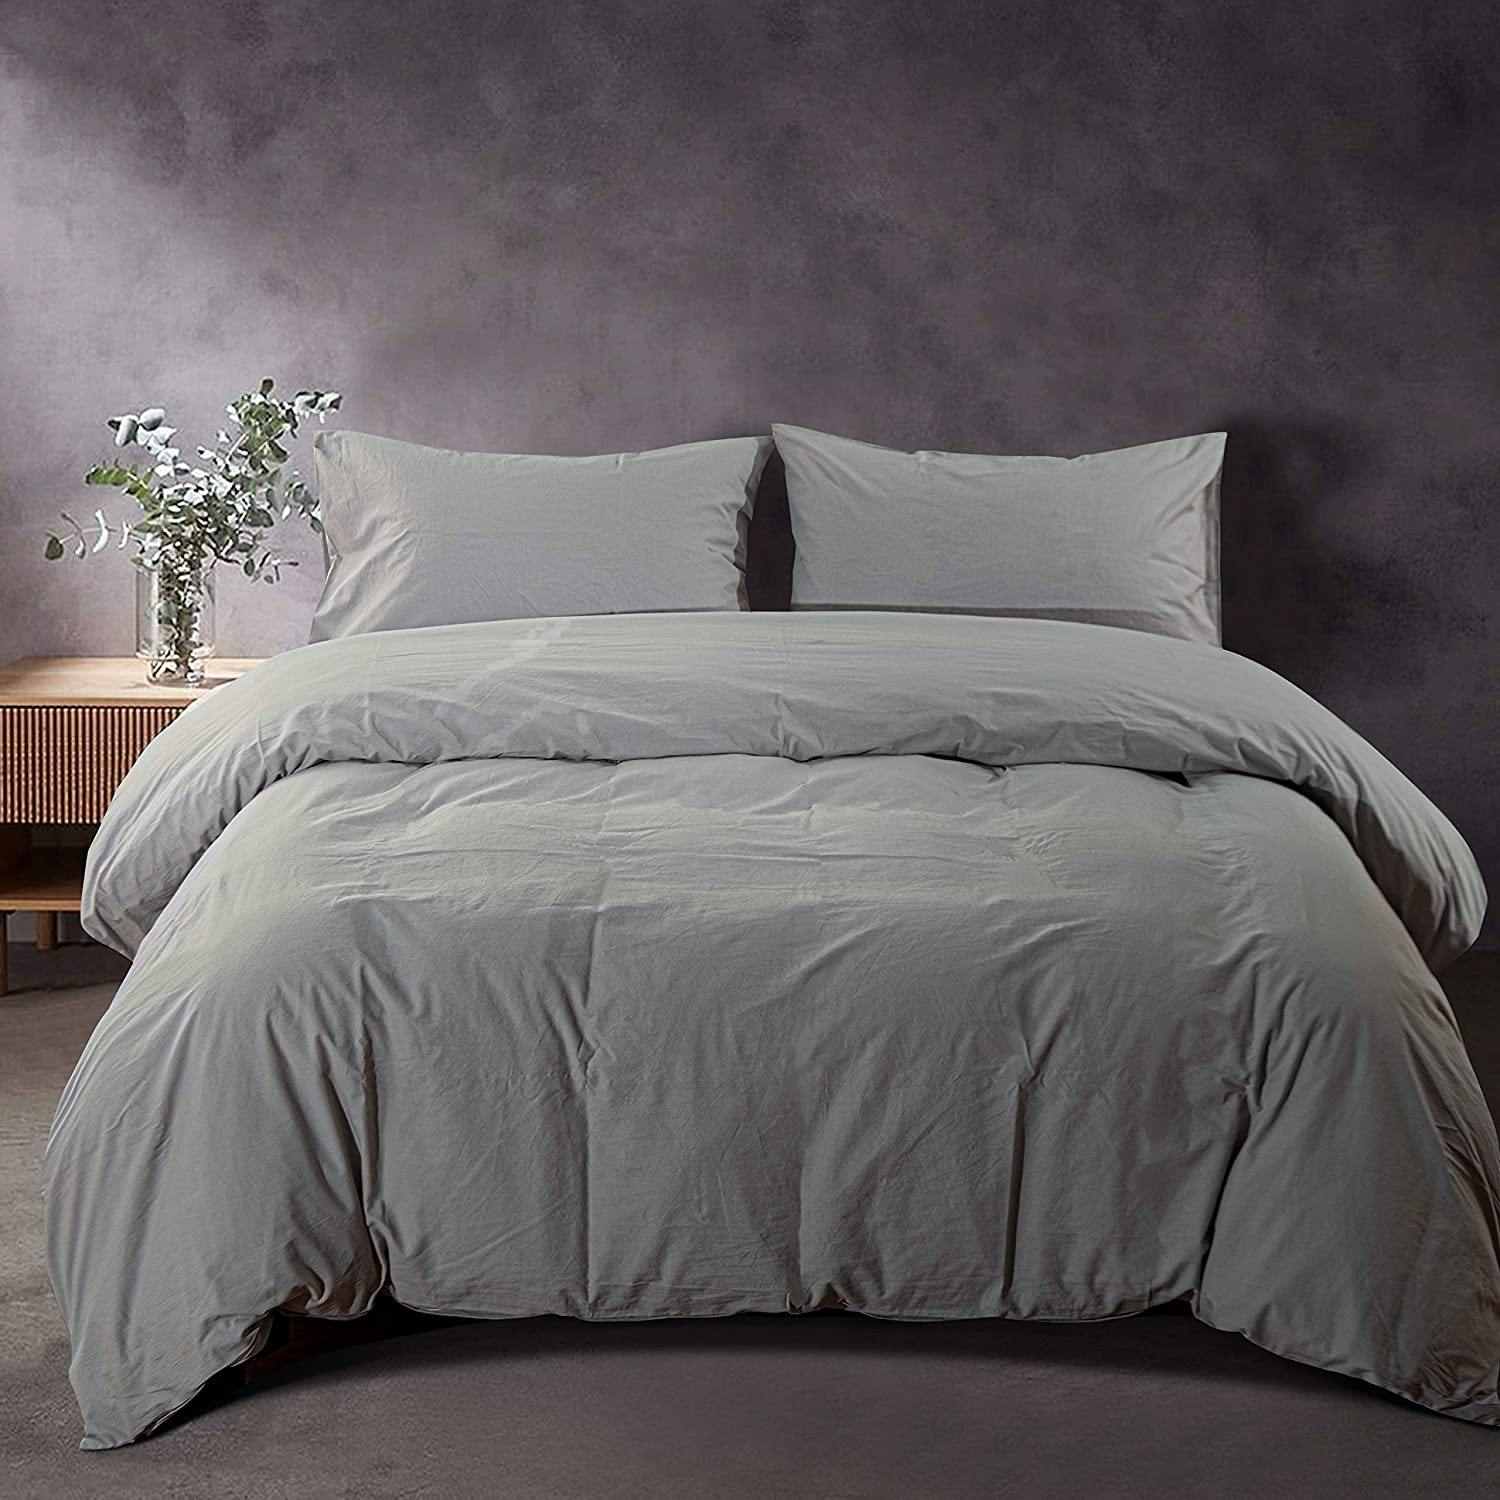 NTBAY Light Grey 3 Pieces Washed Cotton Duvet Cover Set